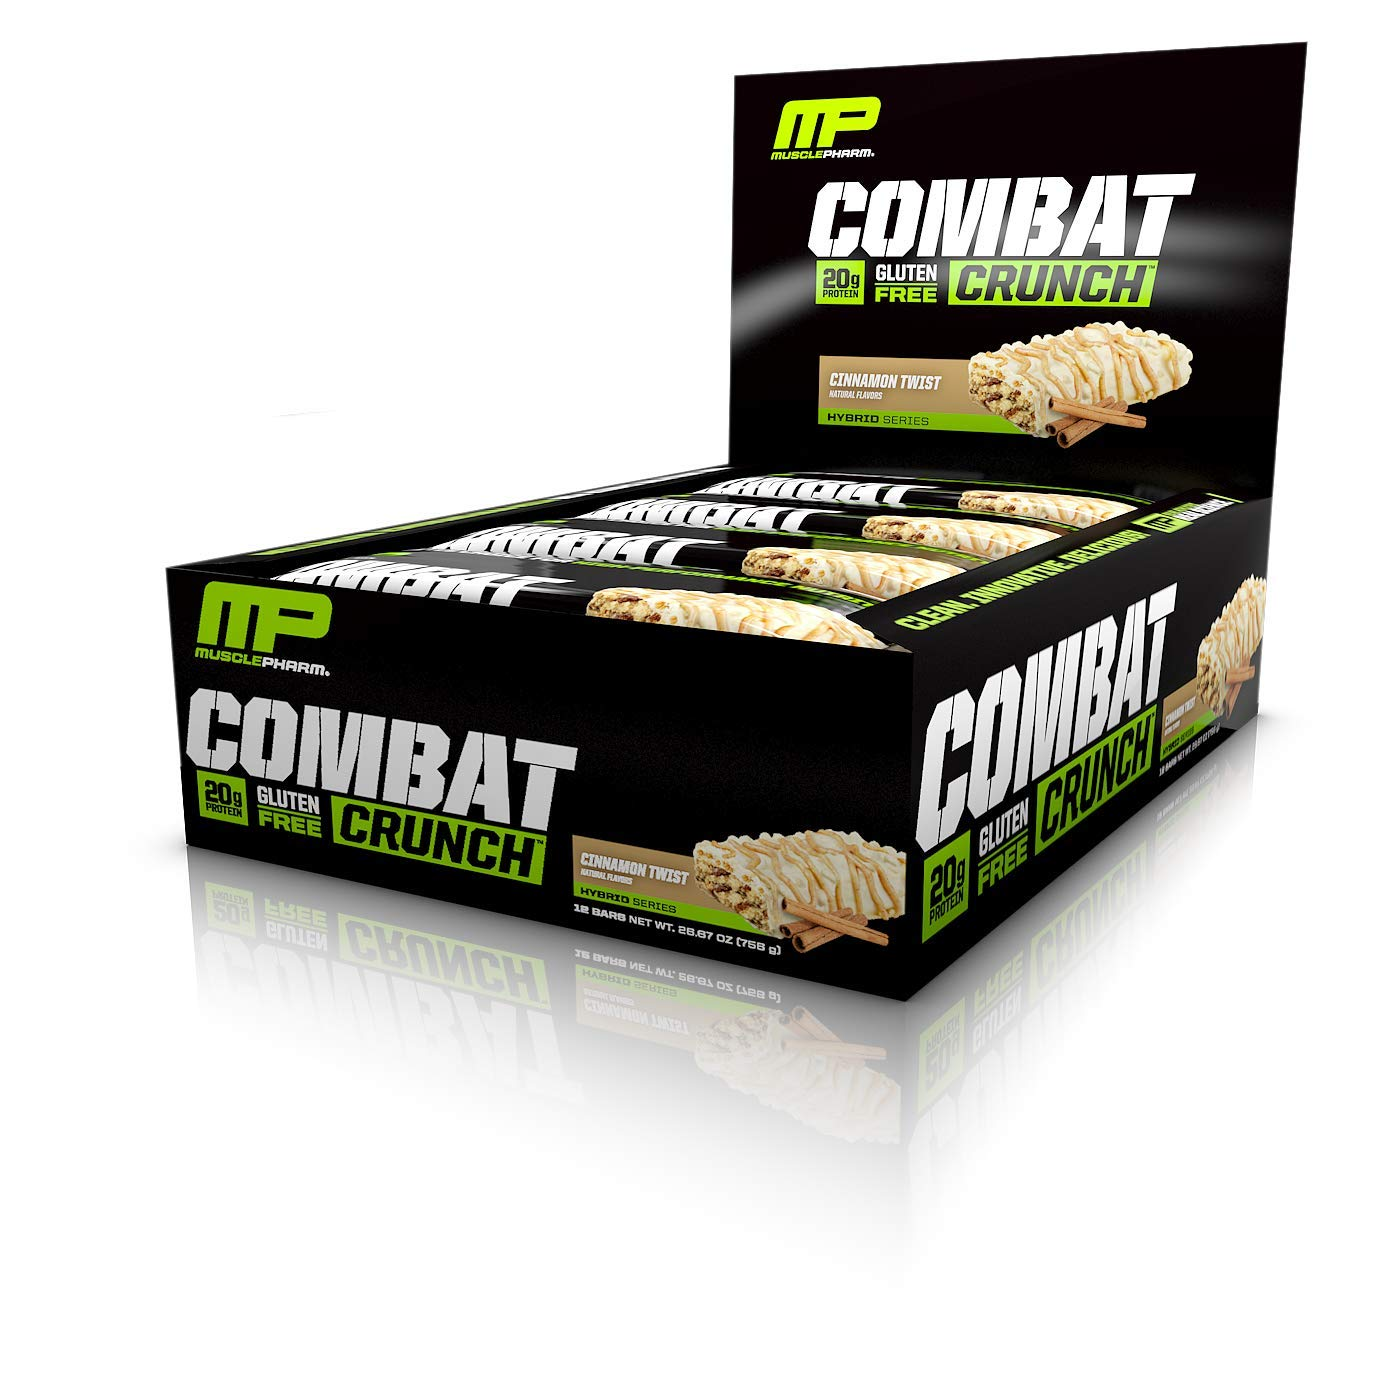 MusclePharm Combat Crunch Protein Bar, Multi-Layered Baked Bar, Gluten-Free Bars, 20 g Protein, Low-Sugar, Low-Carb, Gluten-Free, Cinnamon Twist Bars, 12 Servings by Muscle Pharm